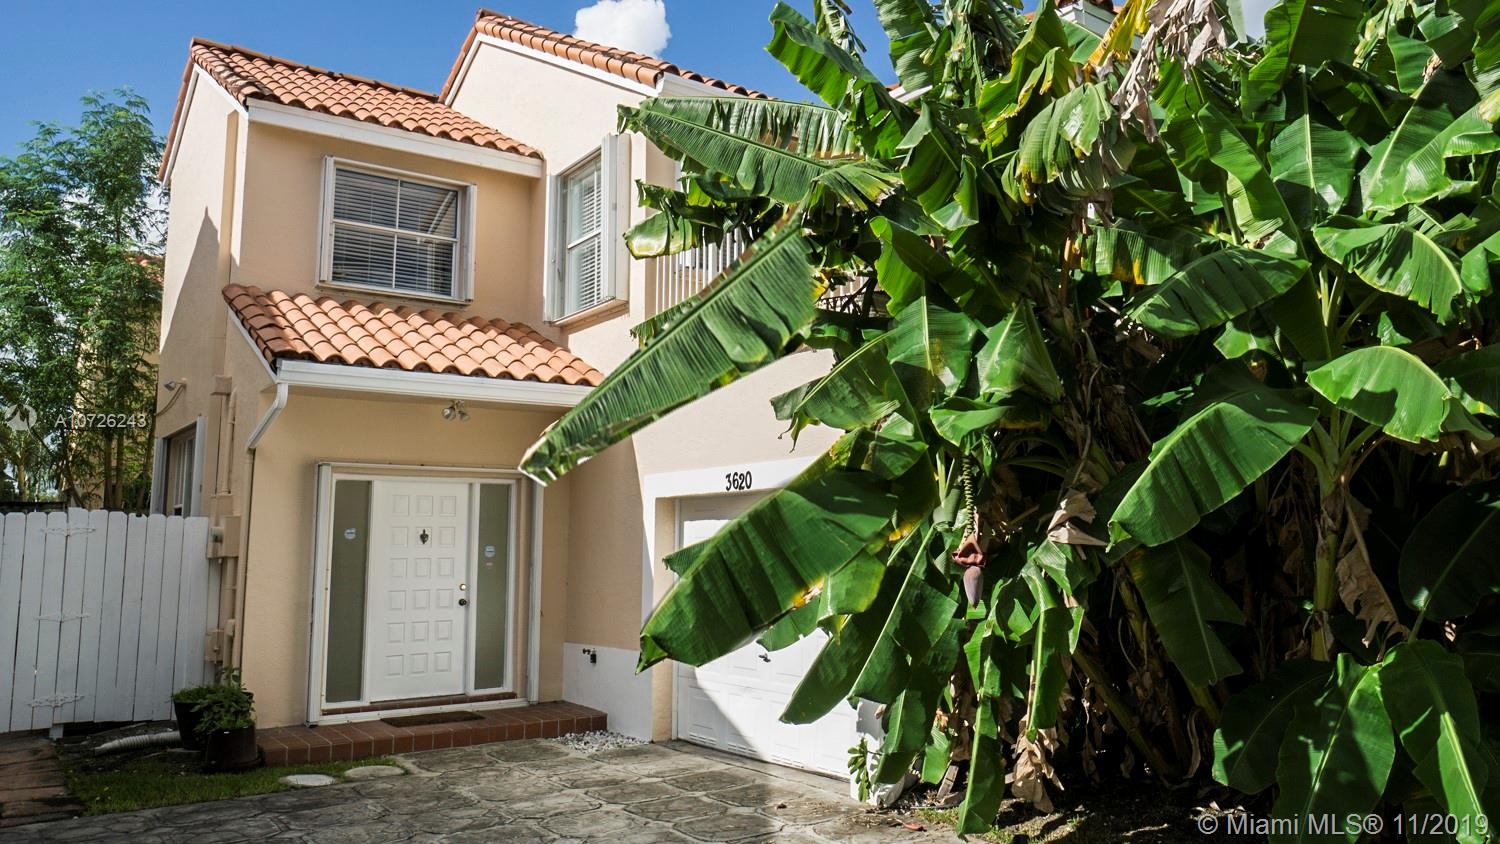 3620  Tuscany Dr  For Sale A10726243, FL